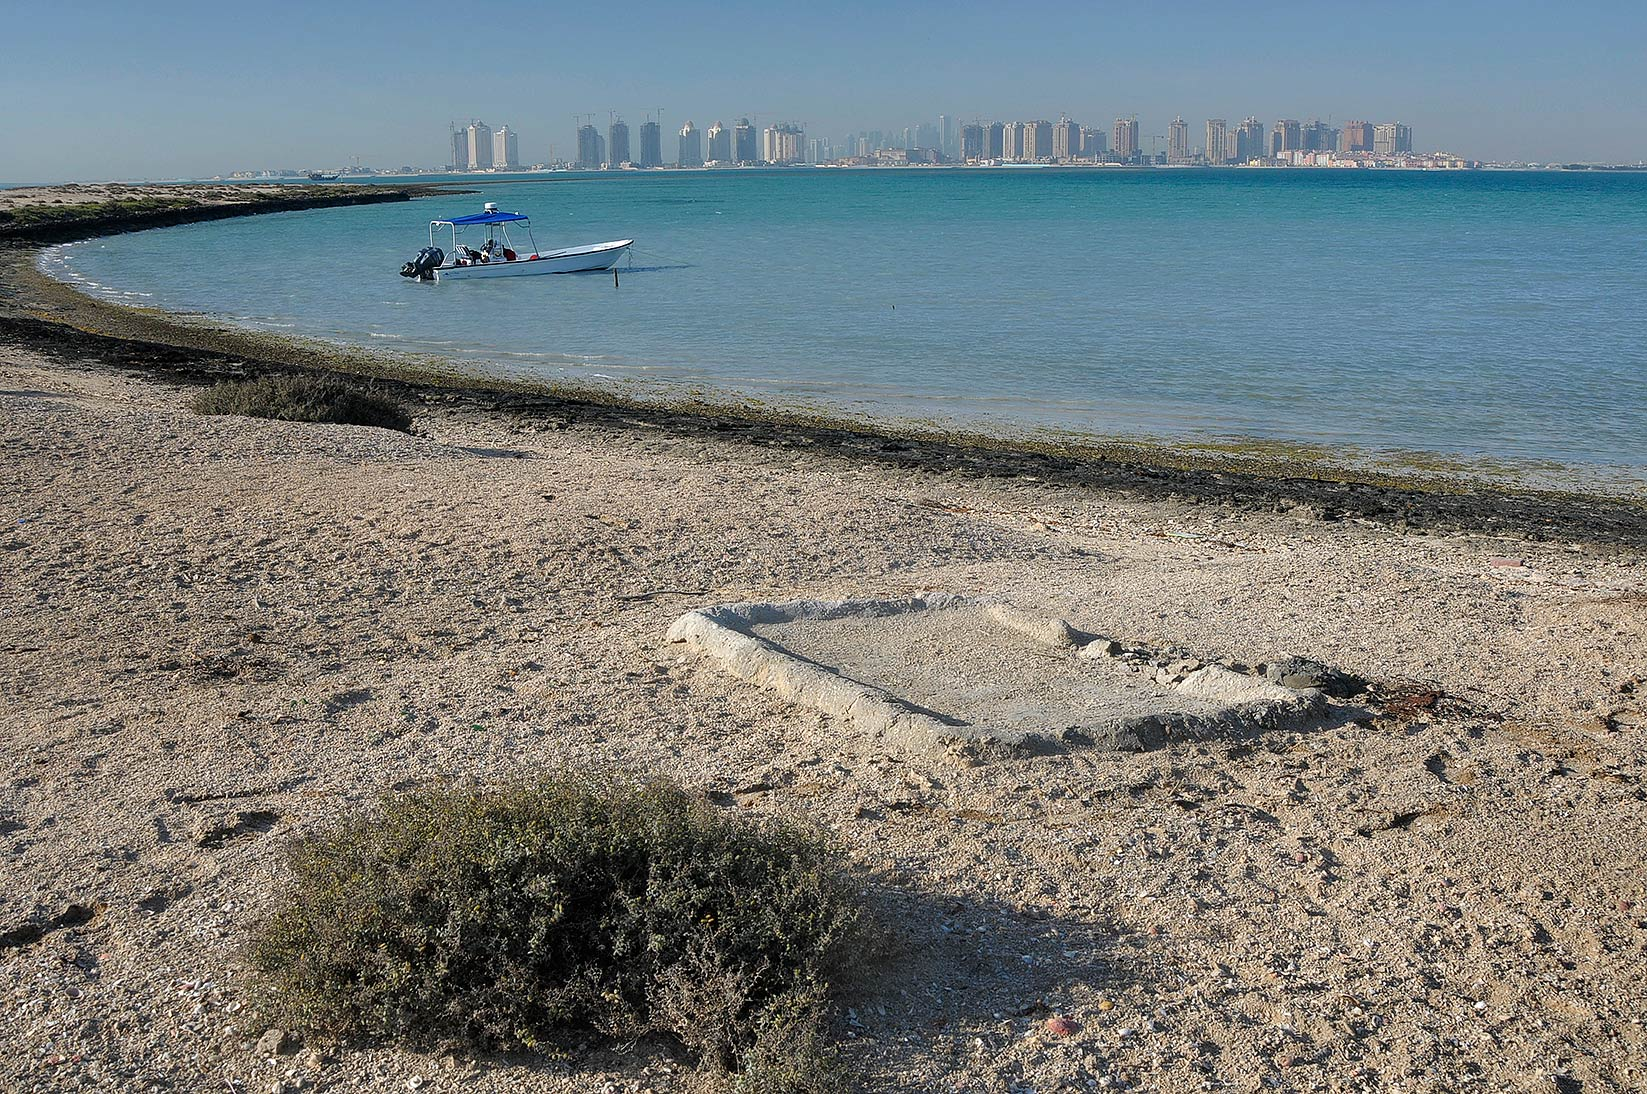 View from a beach in Al Aaliya Island (Jazirat al Aliyah). Qatar